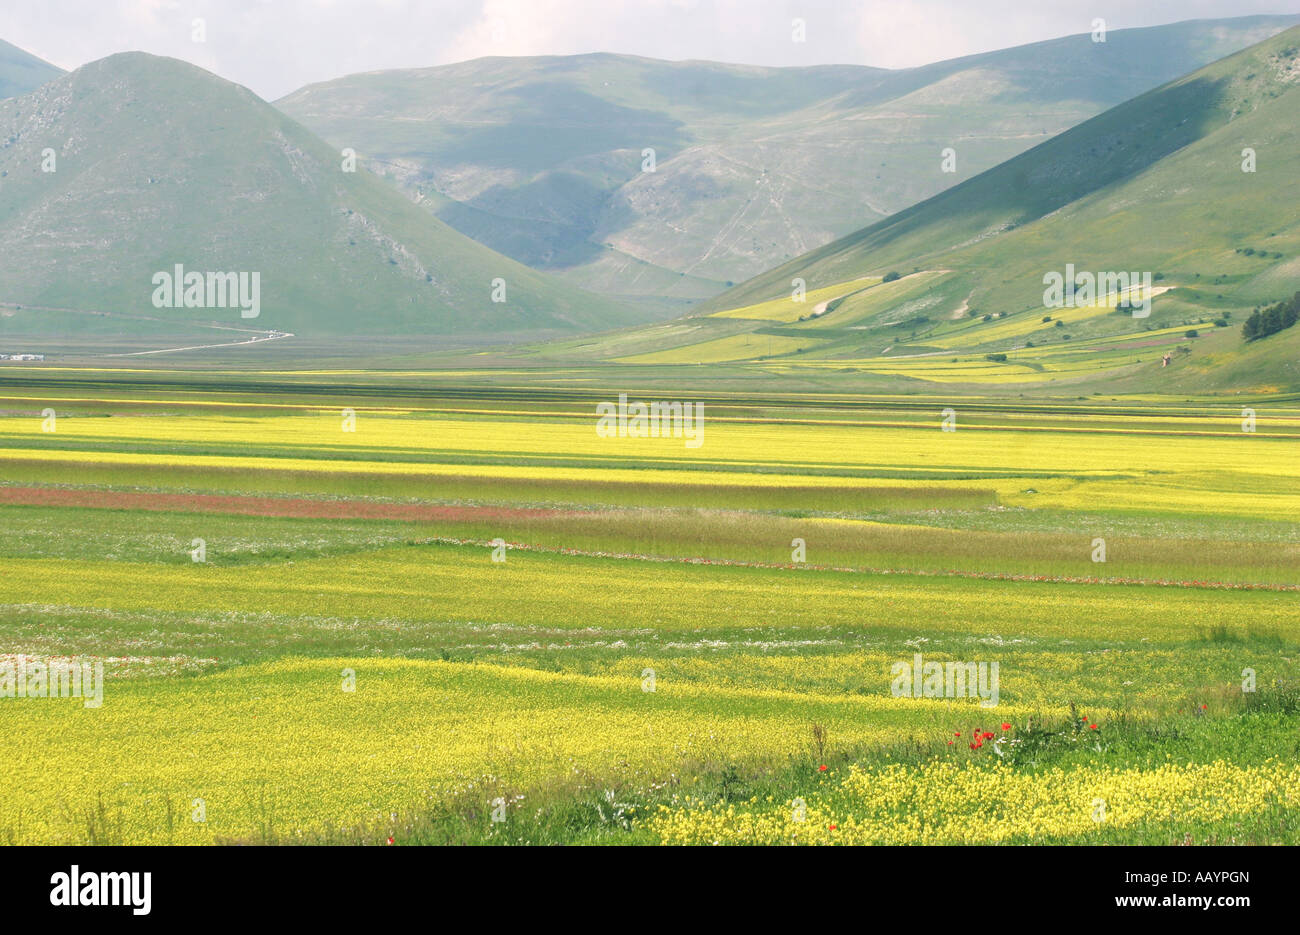 Tourings Stock Photos & Tourings Stock Images - Alamy